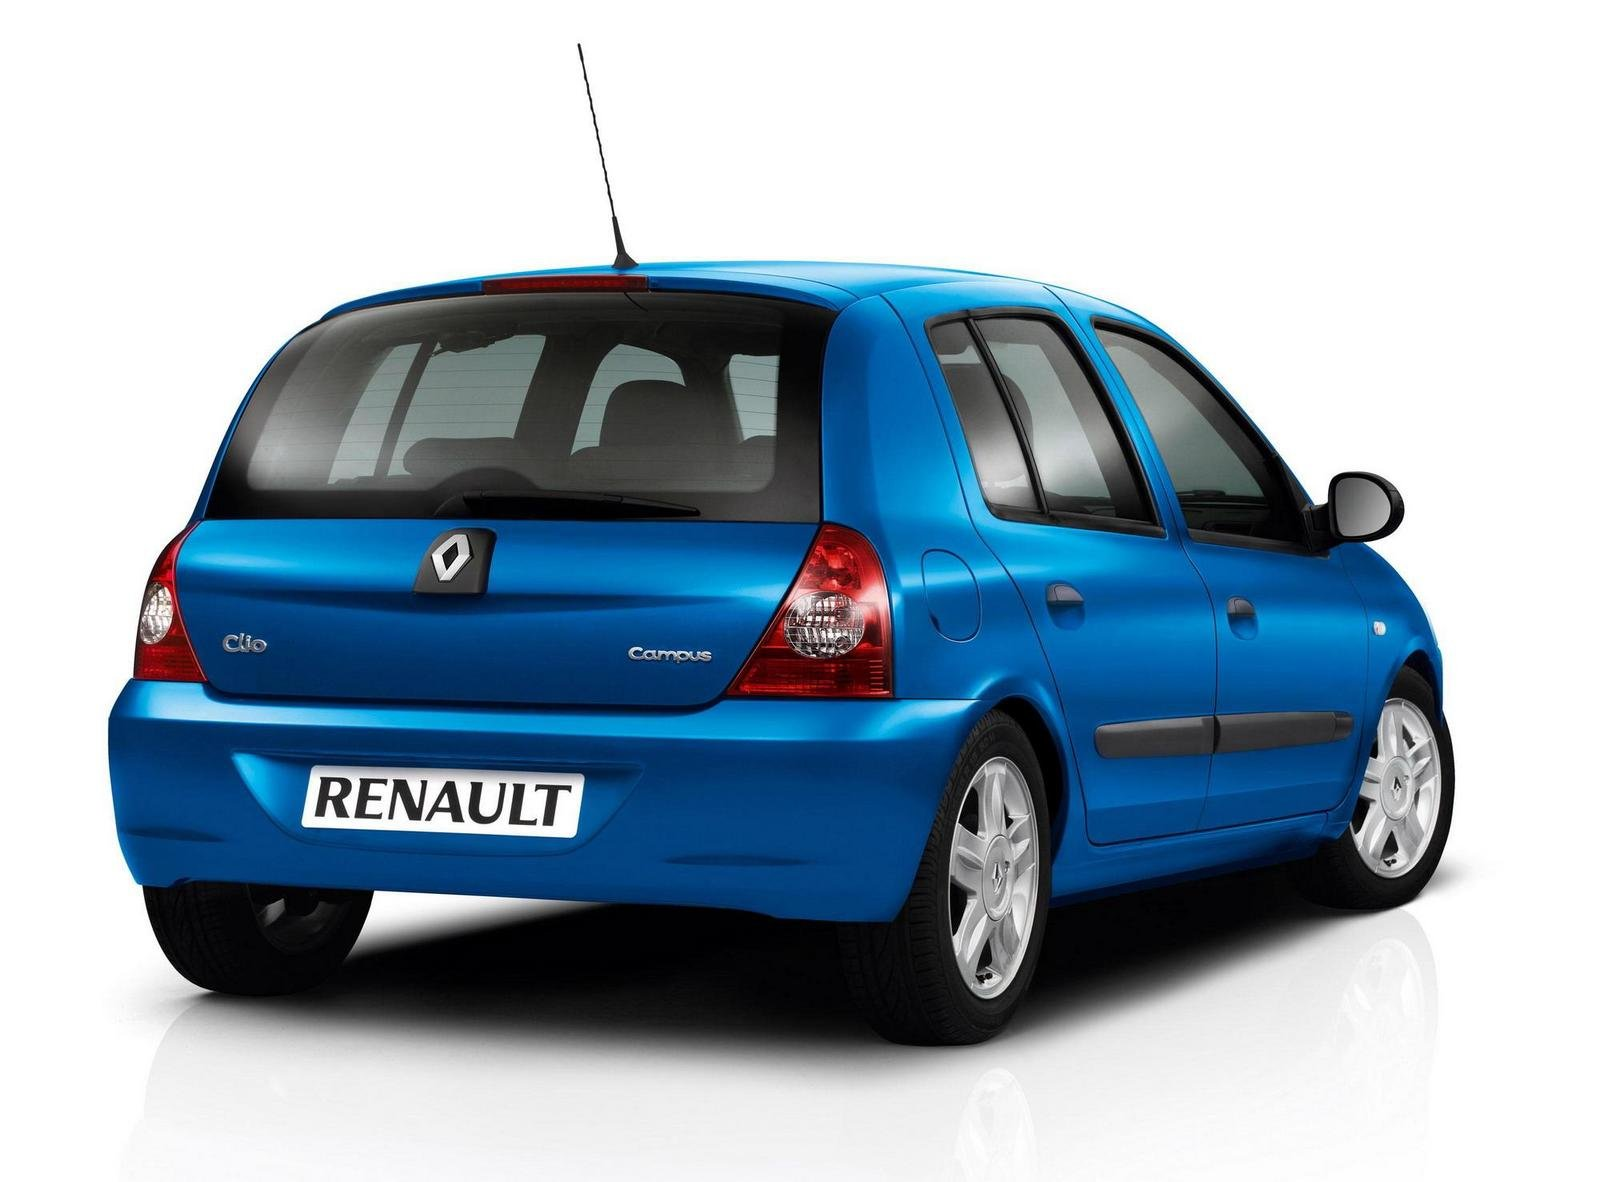 2009 renault clio campus picture 296085 car review top speed. Black Bedroom Furniture Sets. Home Design Ideas